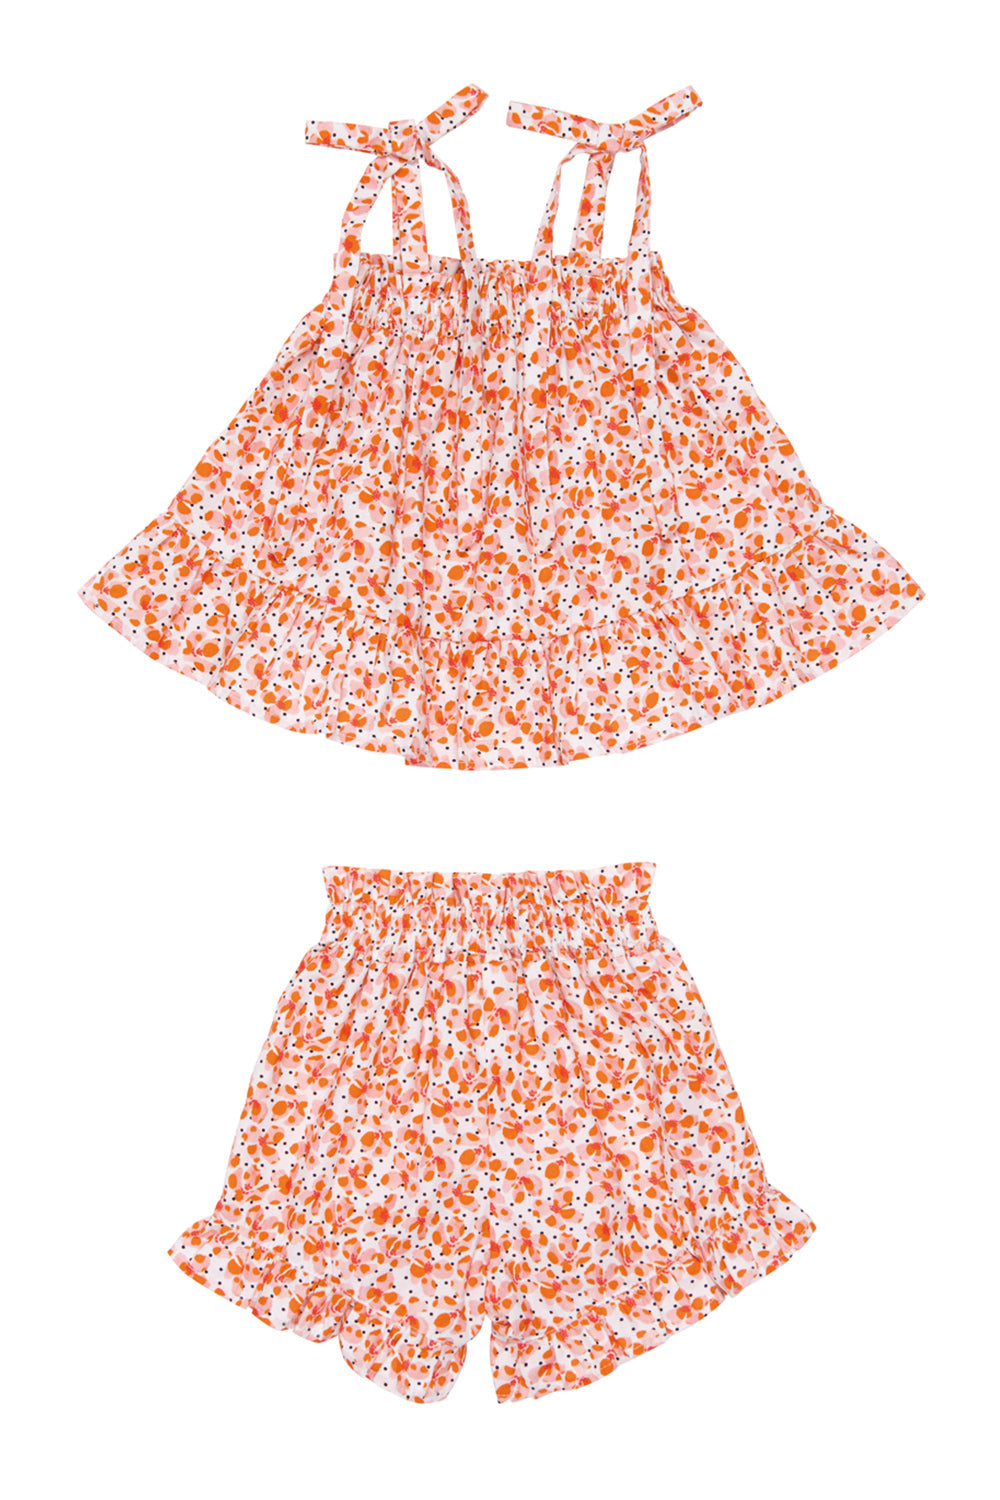 Nikki Girls Floral Top and Short Set